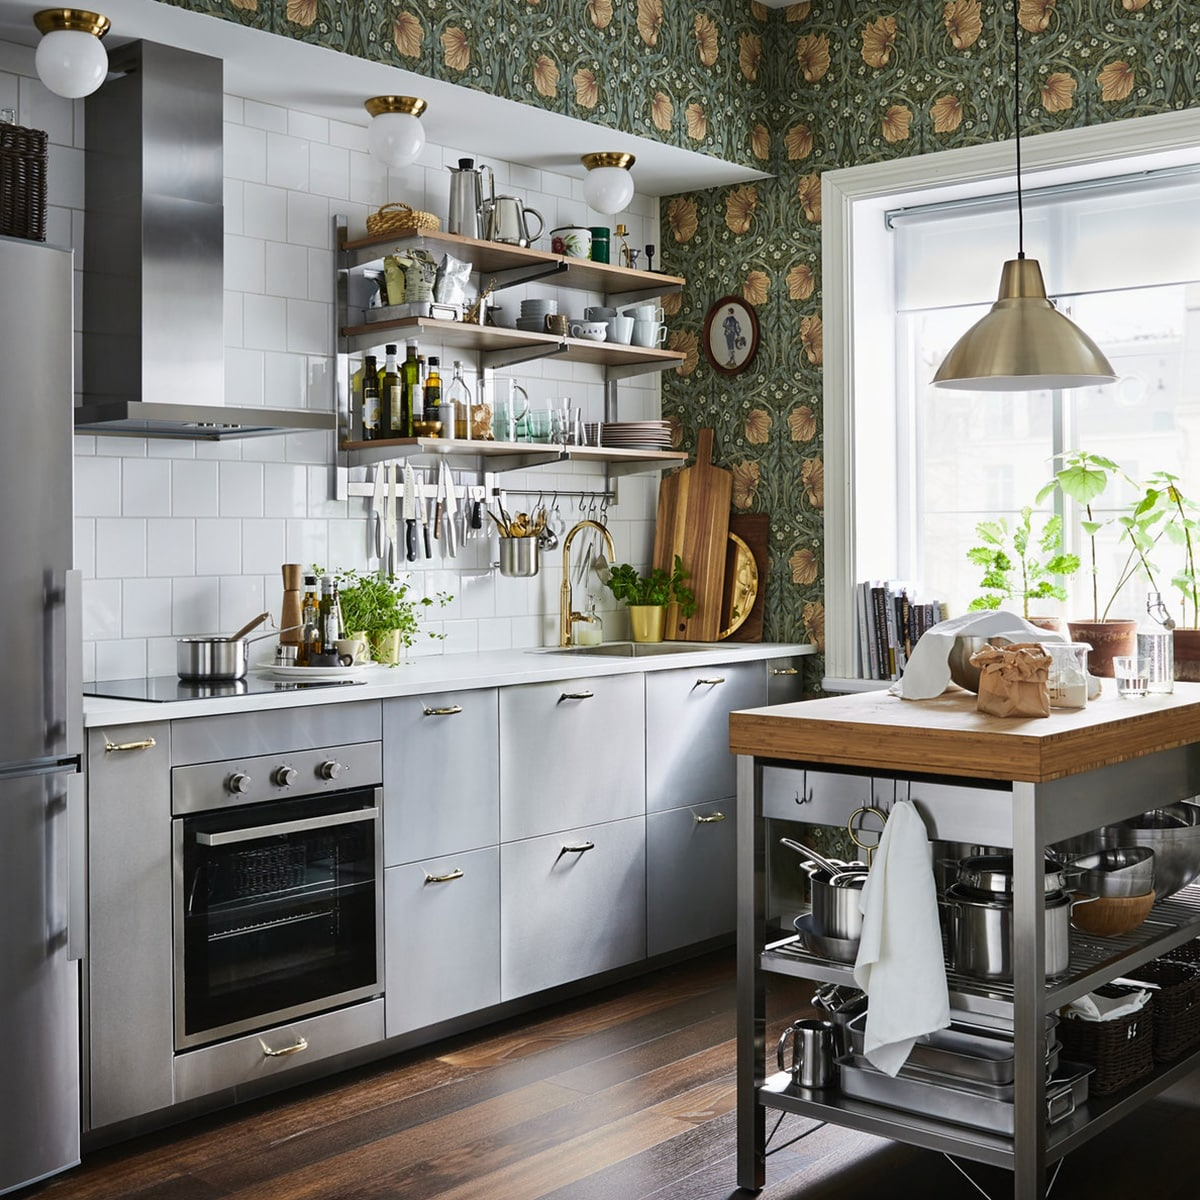 A small, brown and grey kitchen with traditional wallpaper and contemporary GREVSTA drawer fronts in stainless steel.